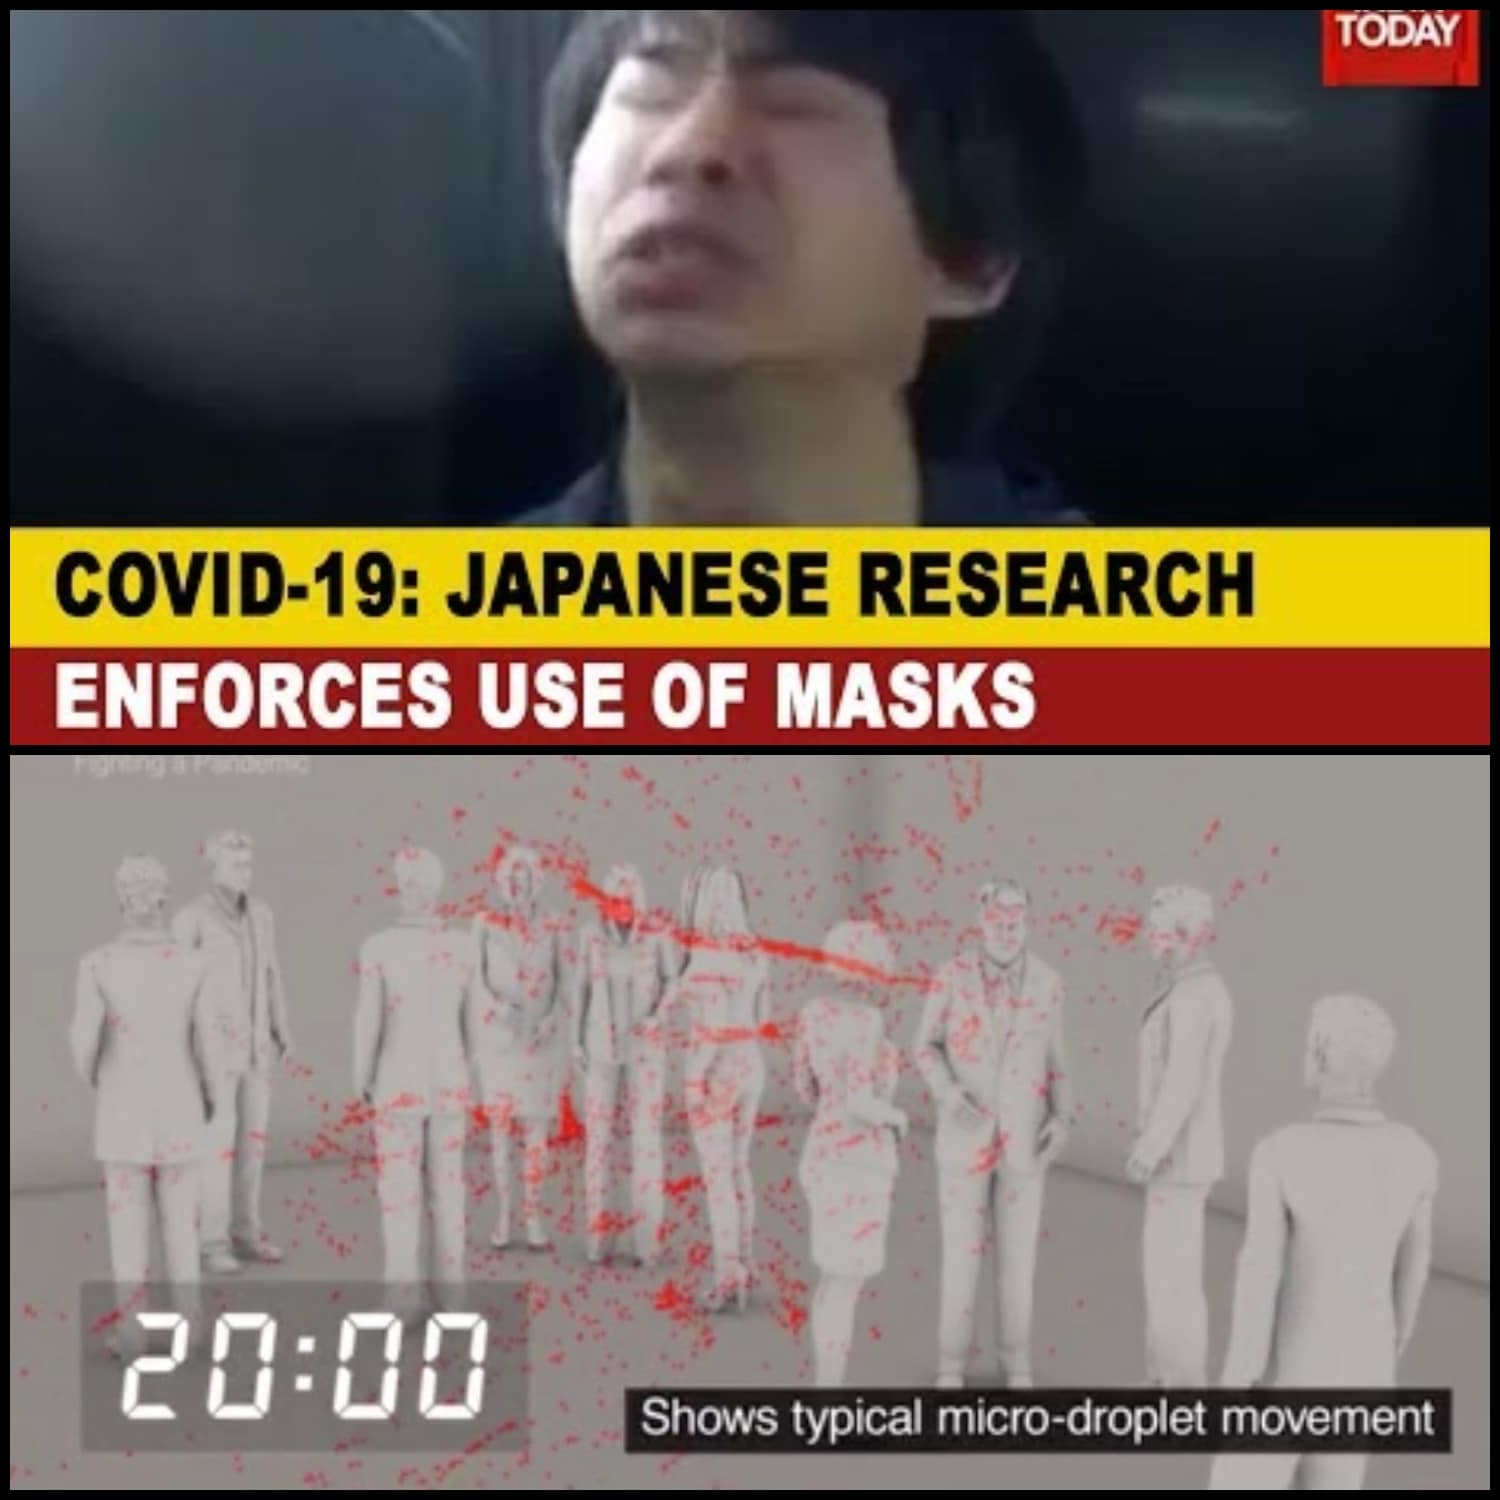 Japanese research about spreading the coronavirus